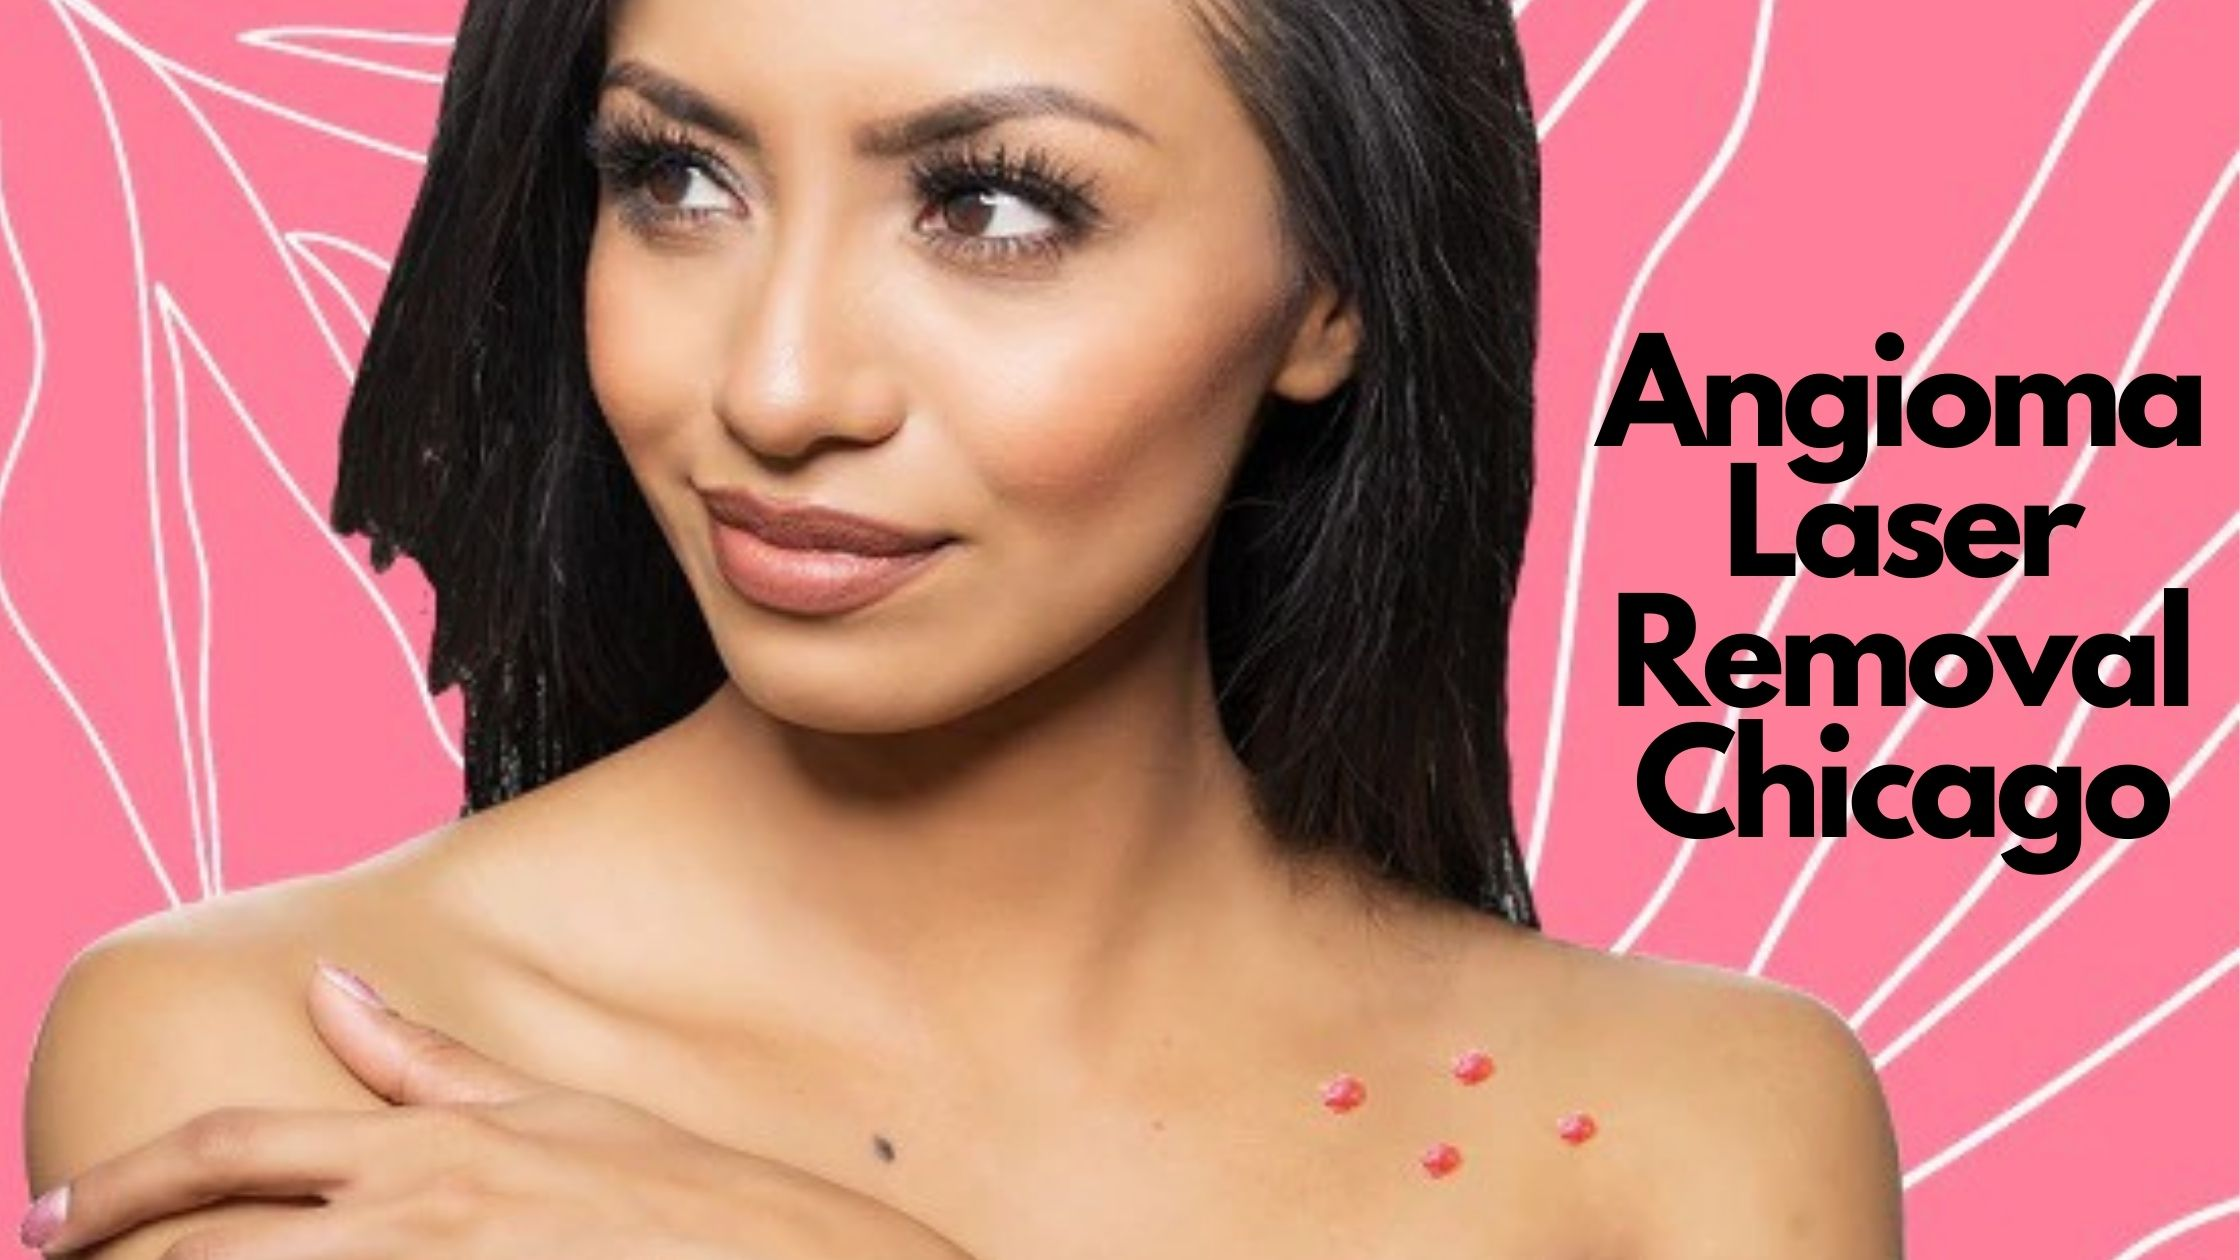 Angioma Laser Removal Chicago